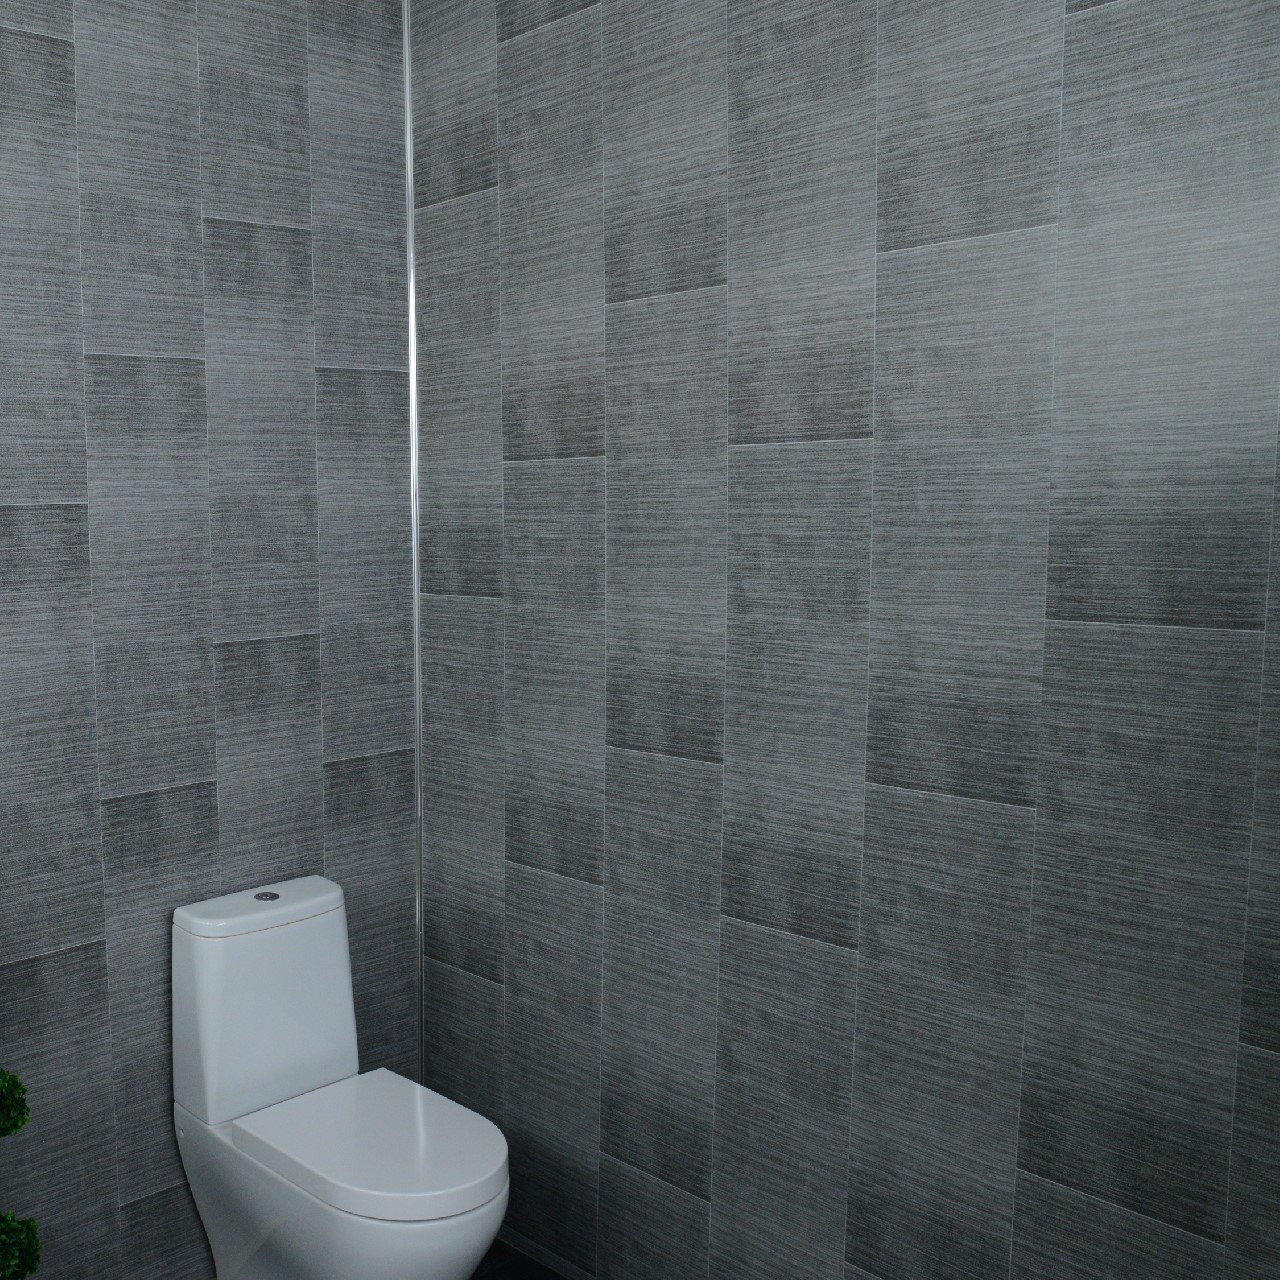 White Gloss Effect-100/% Waterproof-by Claddtech Bathroom Shower Cladding Wall Panels-Ceiling Panels 5 Panel Pack